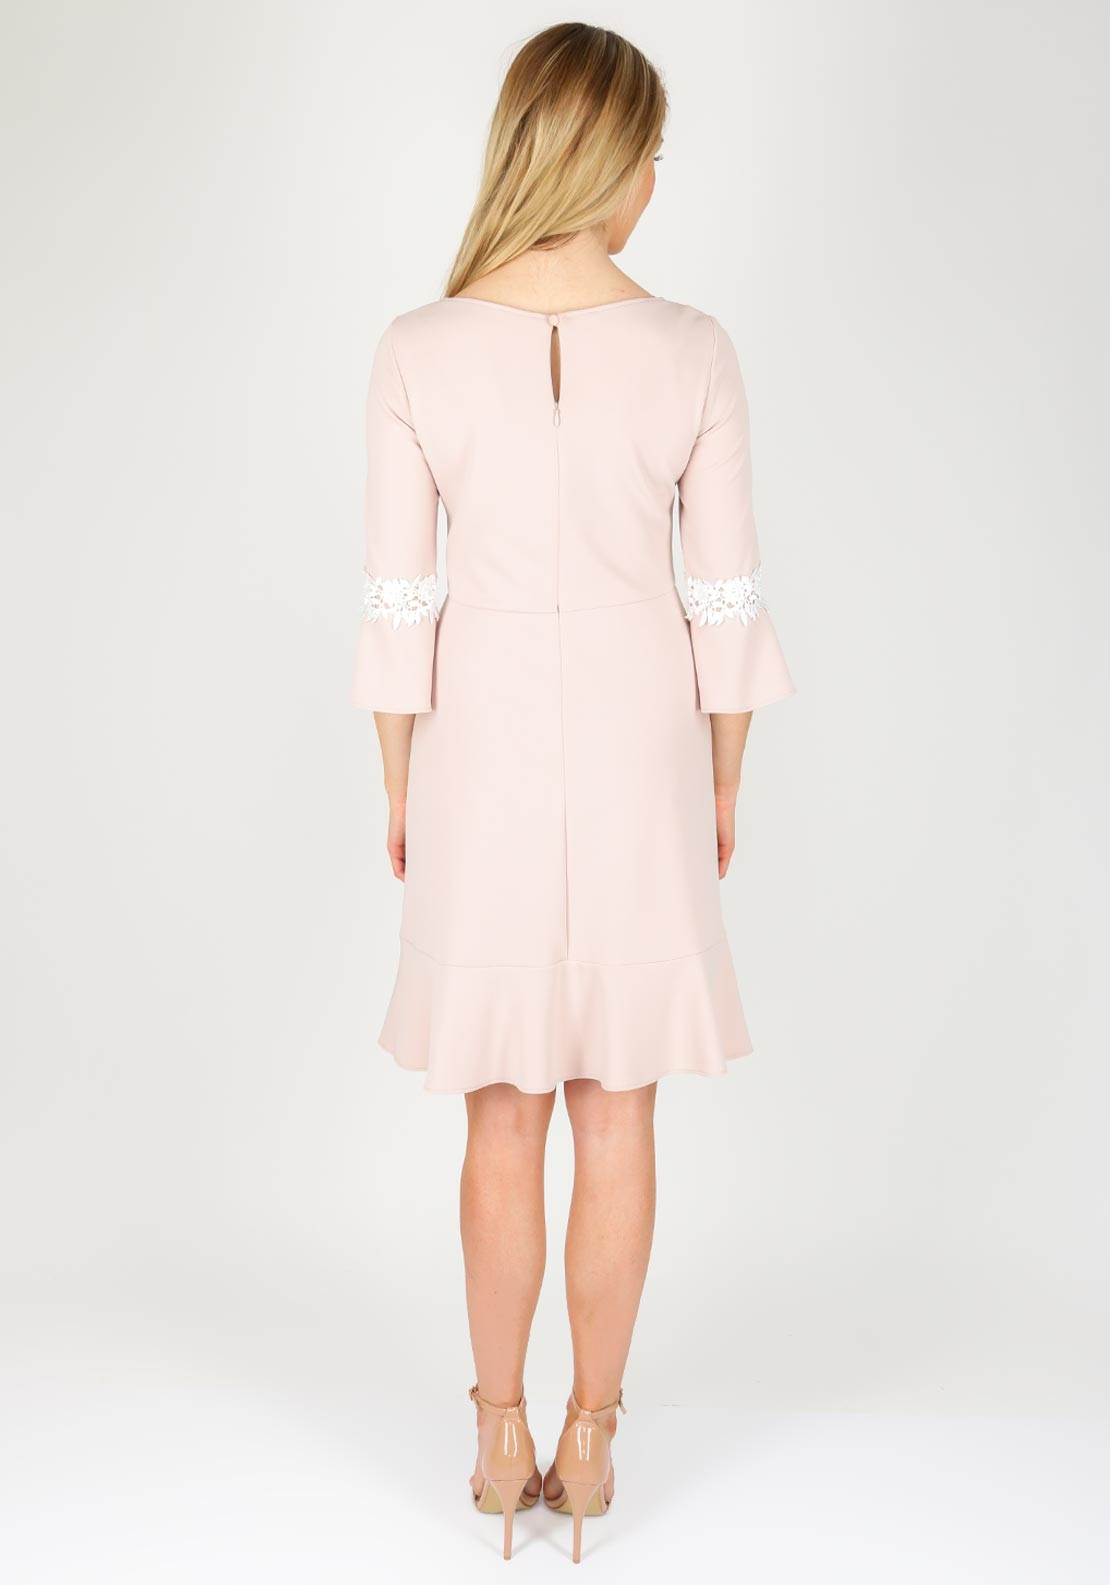 573aa305be98 Vera Mont Lace Trim Bell Sleeve Dress